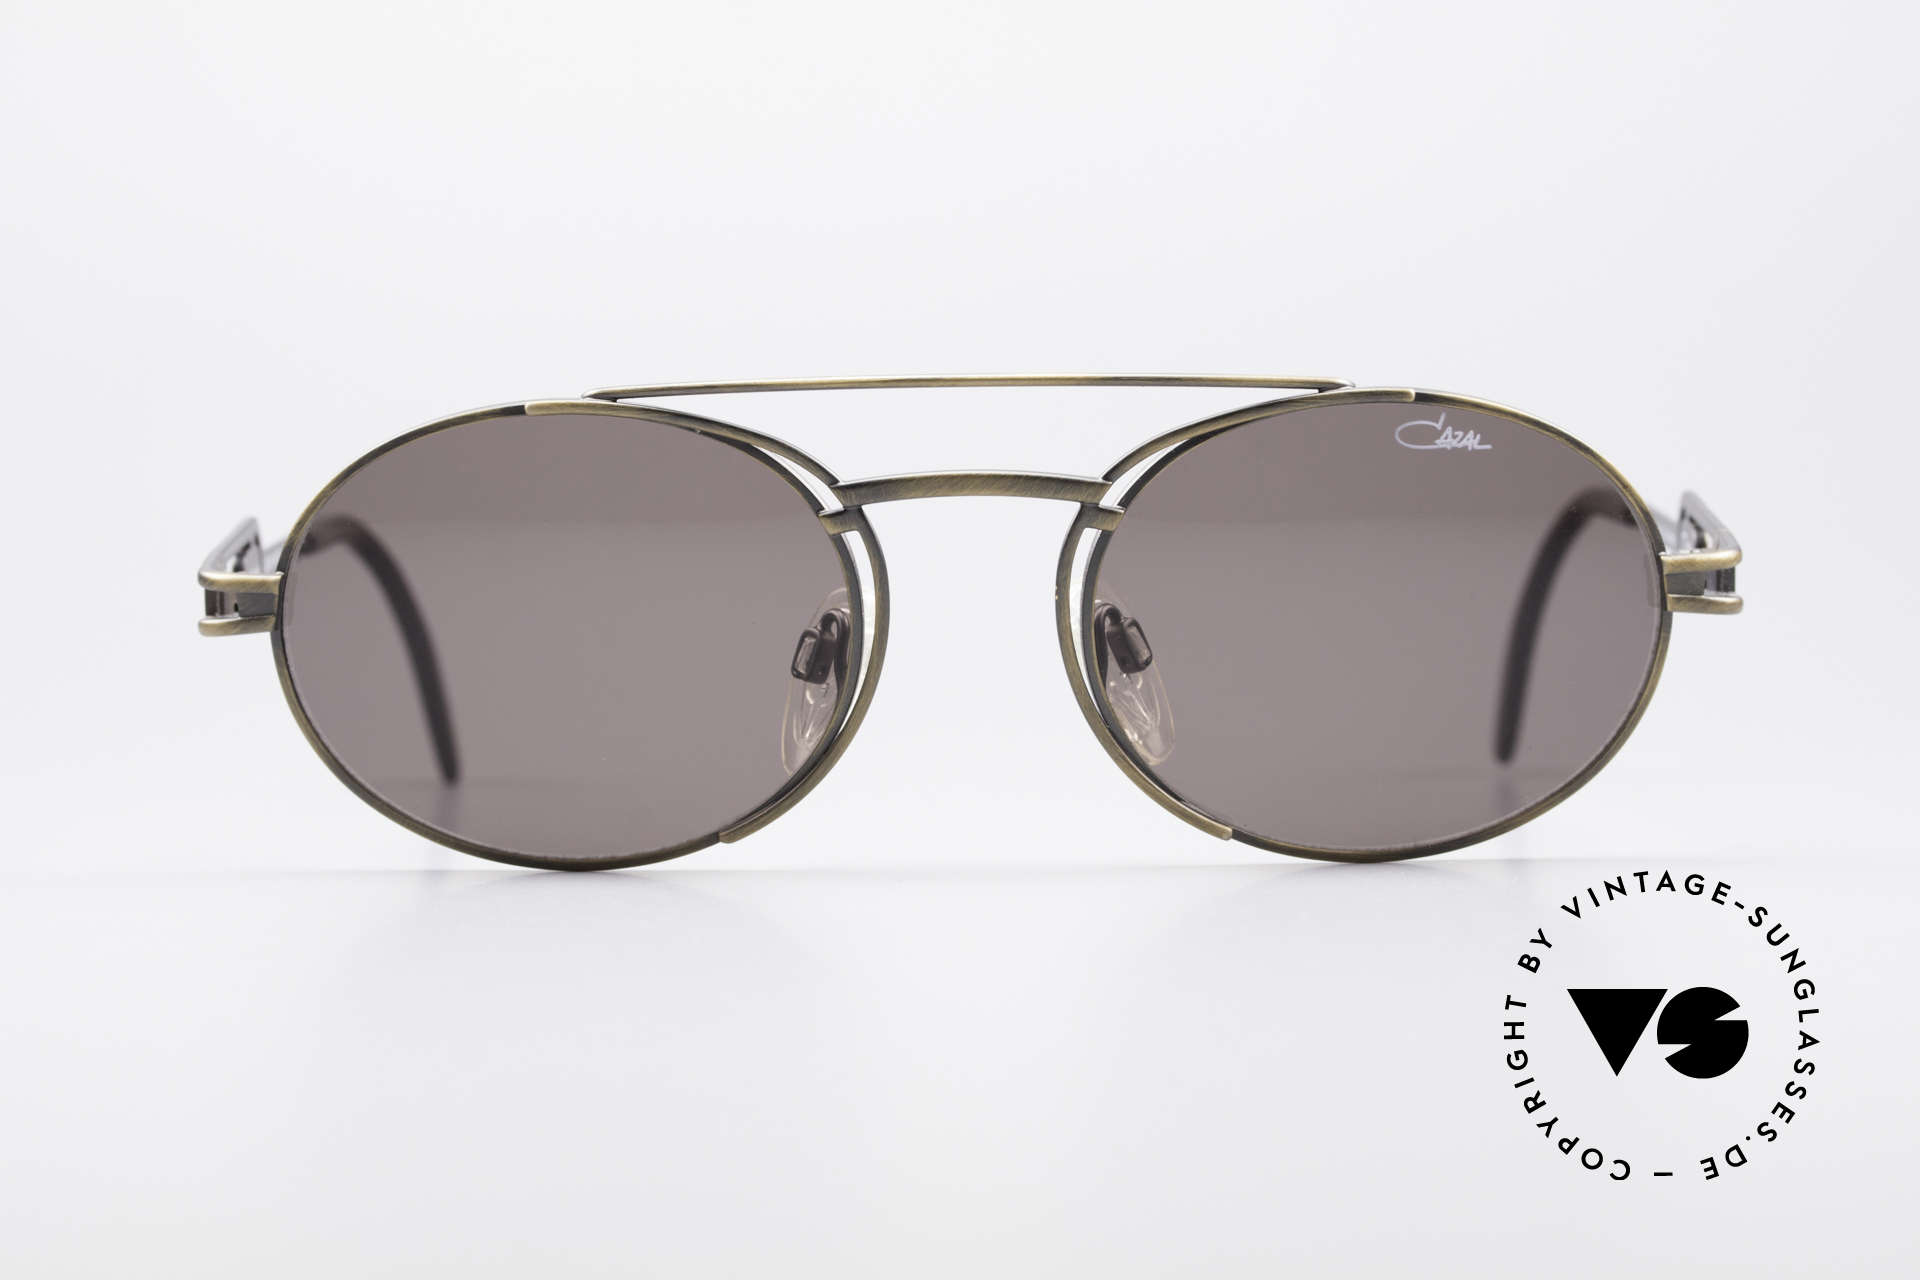 Cazal 965 Oval Steampunk Style Shades, frame is reminiscent of 'industrial/steampunk' design, Made for Men and Women